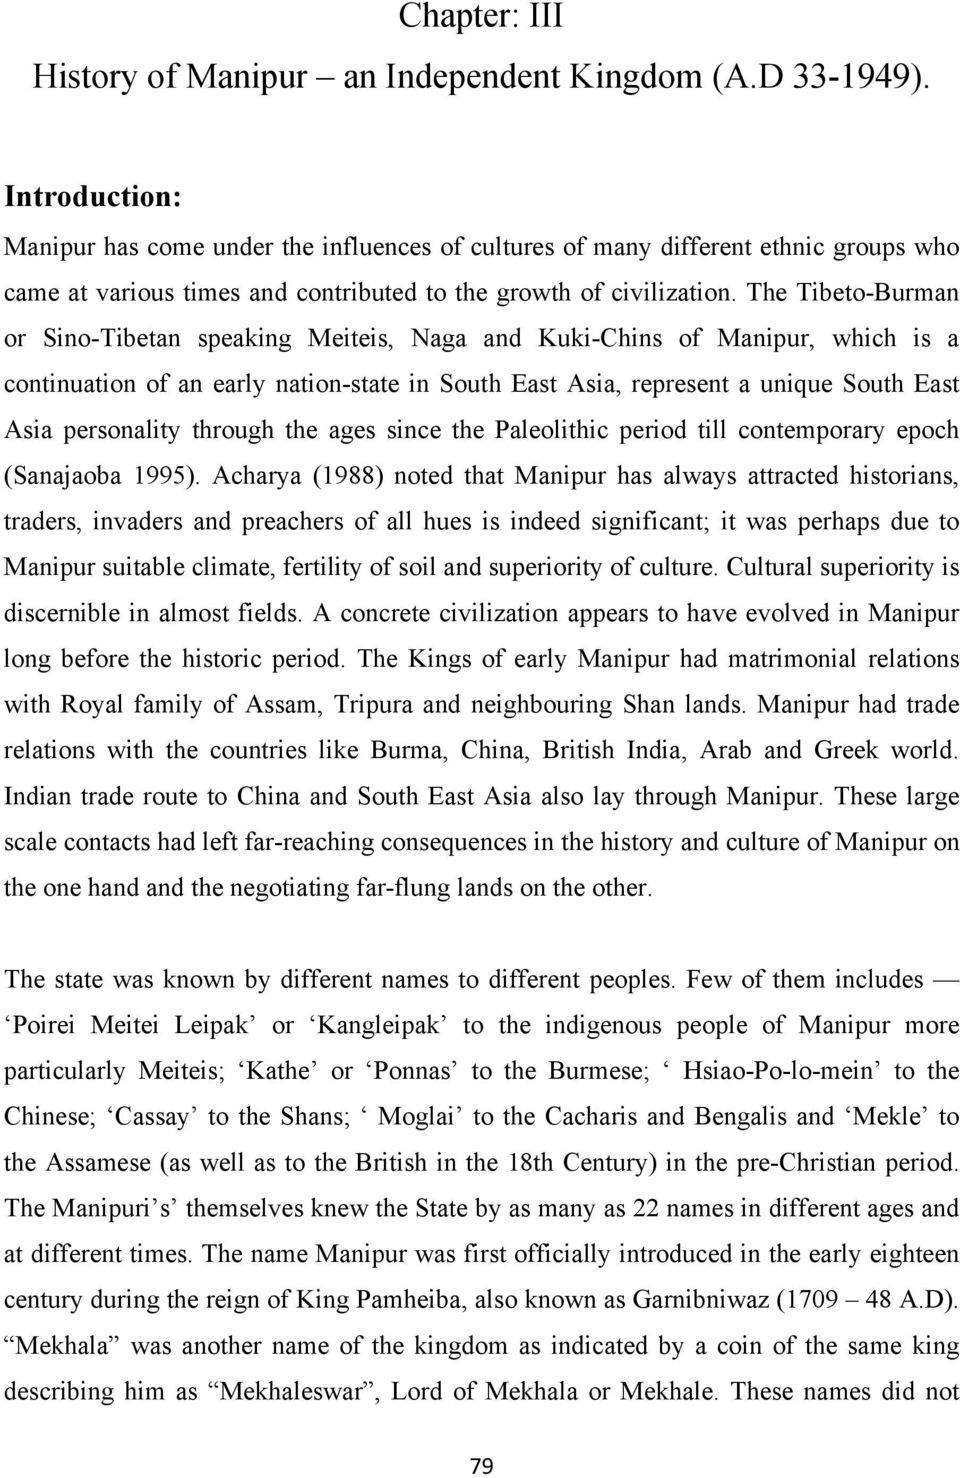 Chapter: III History of Manipur an Independent Kingdom (A D )  - PDF